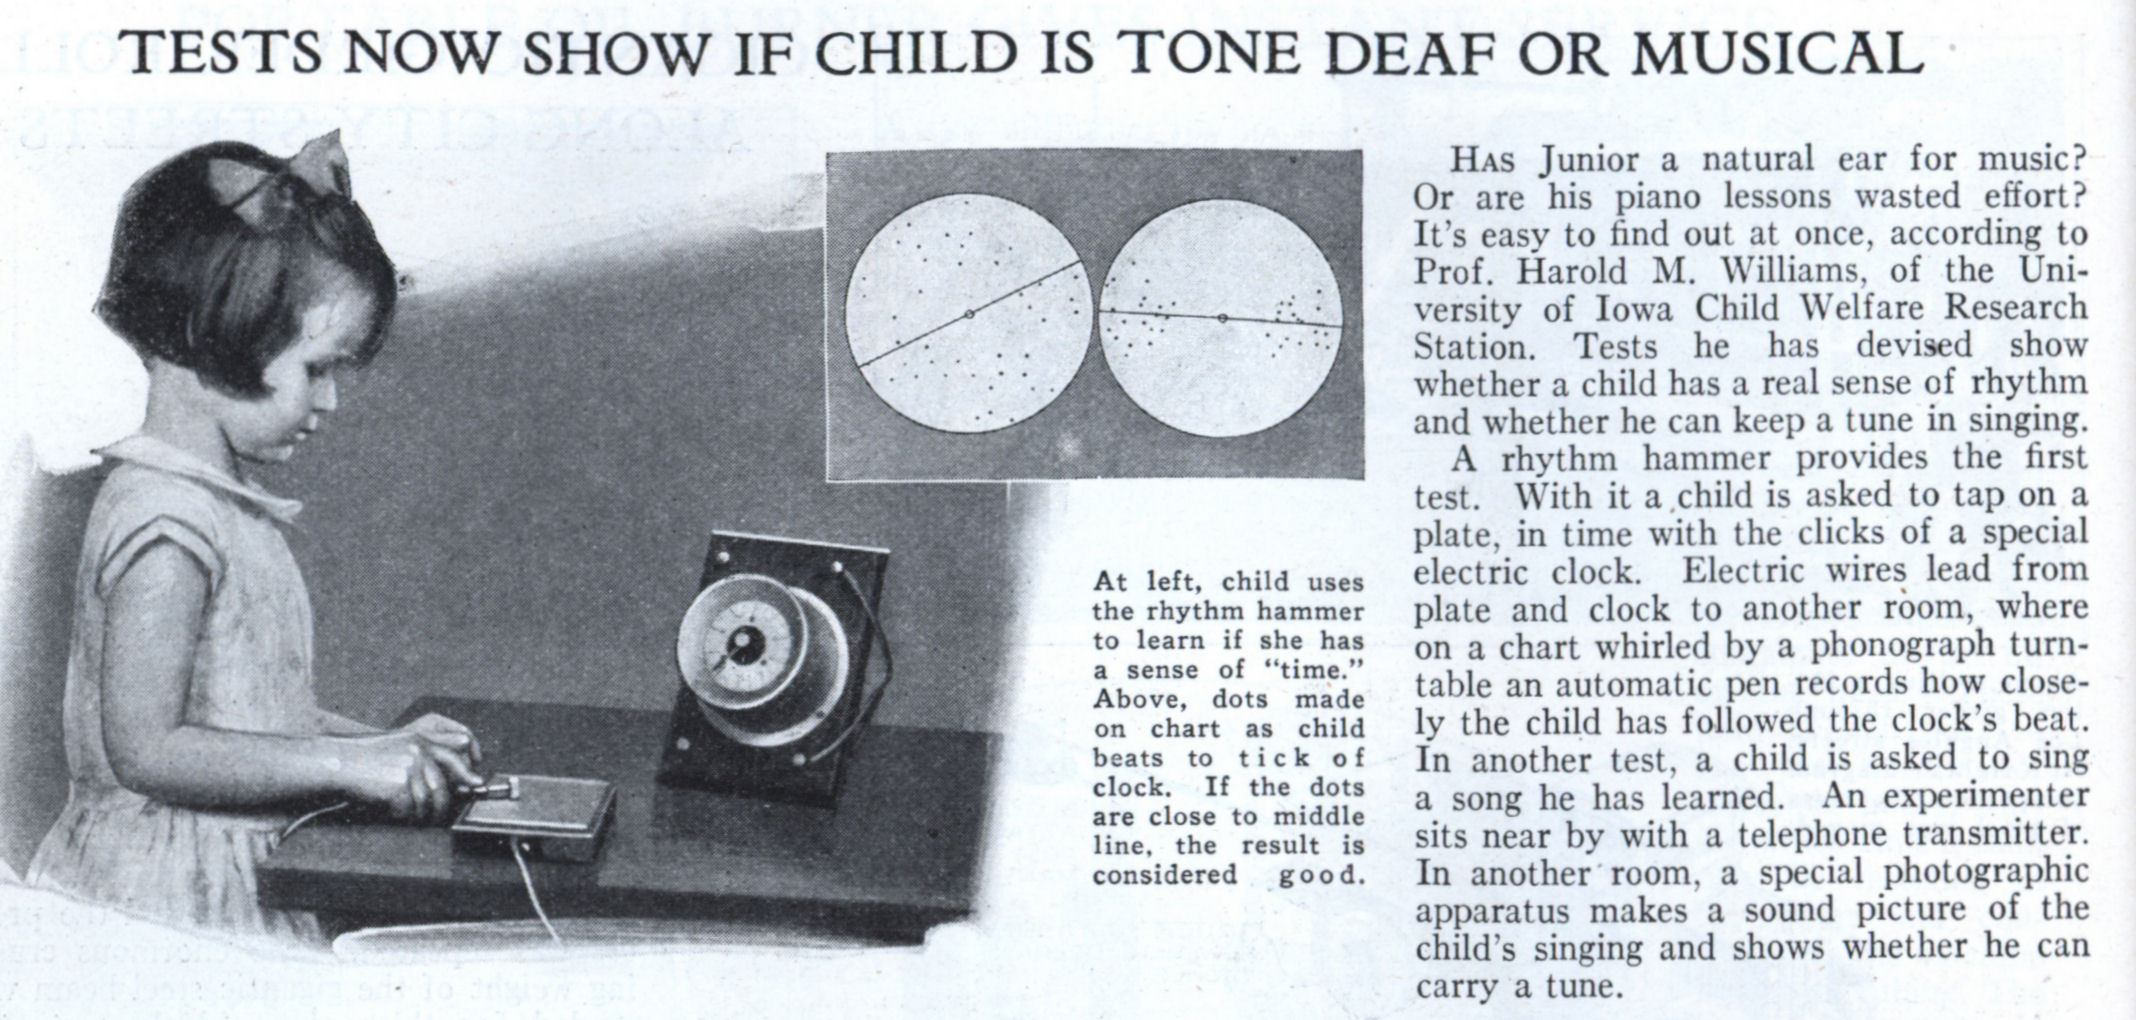 TESTS NOW SHOW IF CHILD IS TONE DEAF OR MUSICAL | Modern